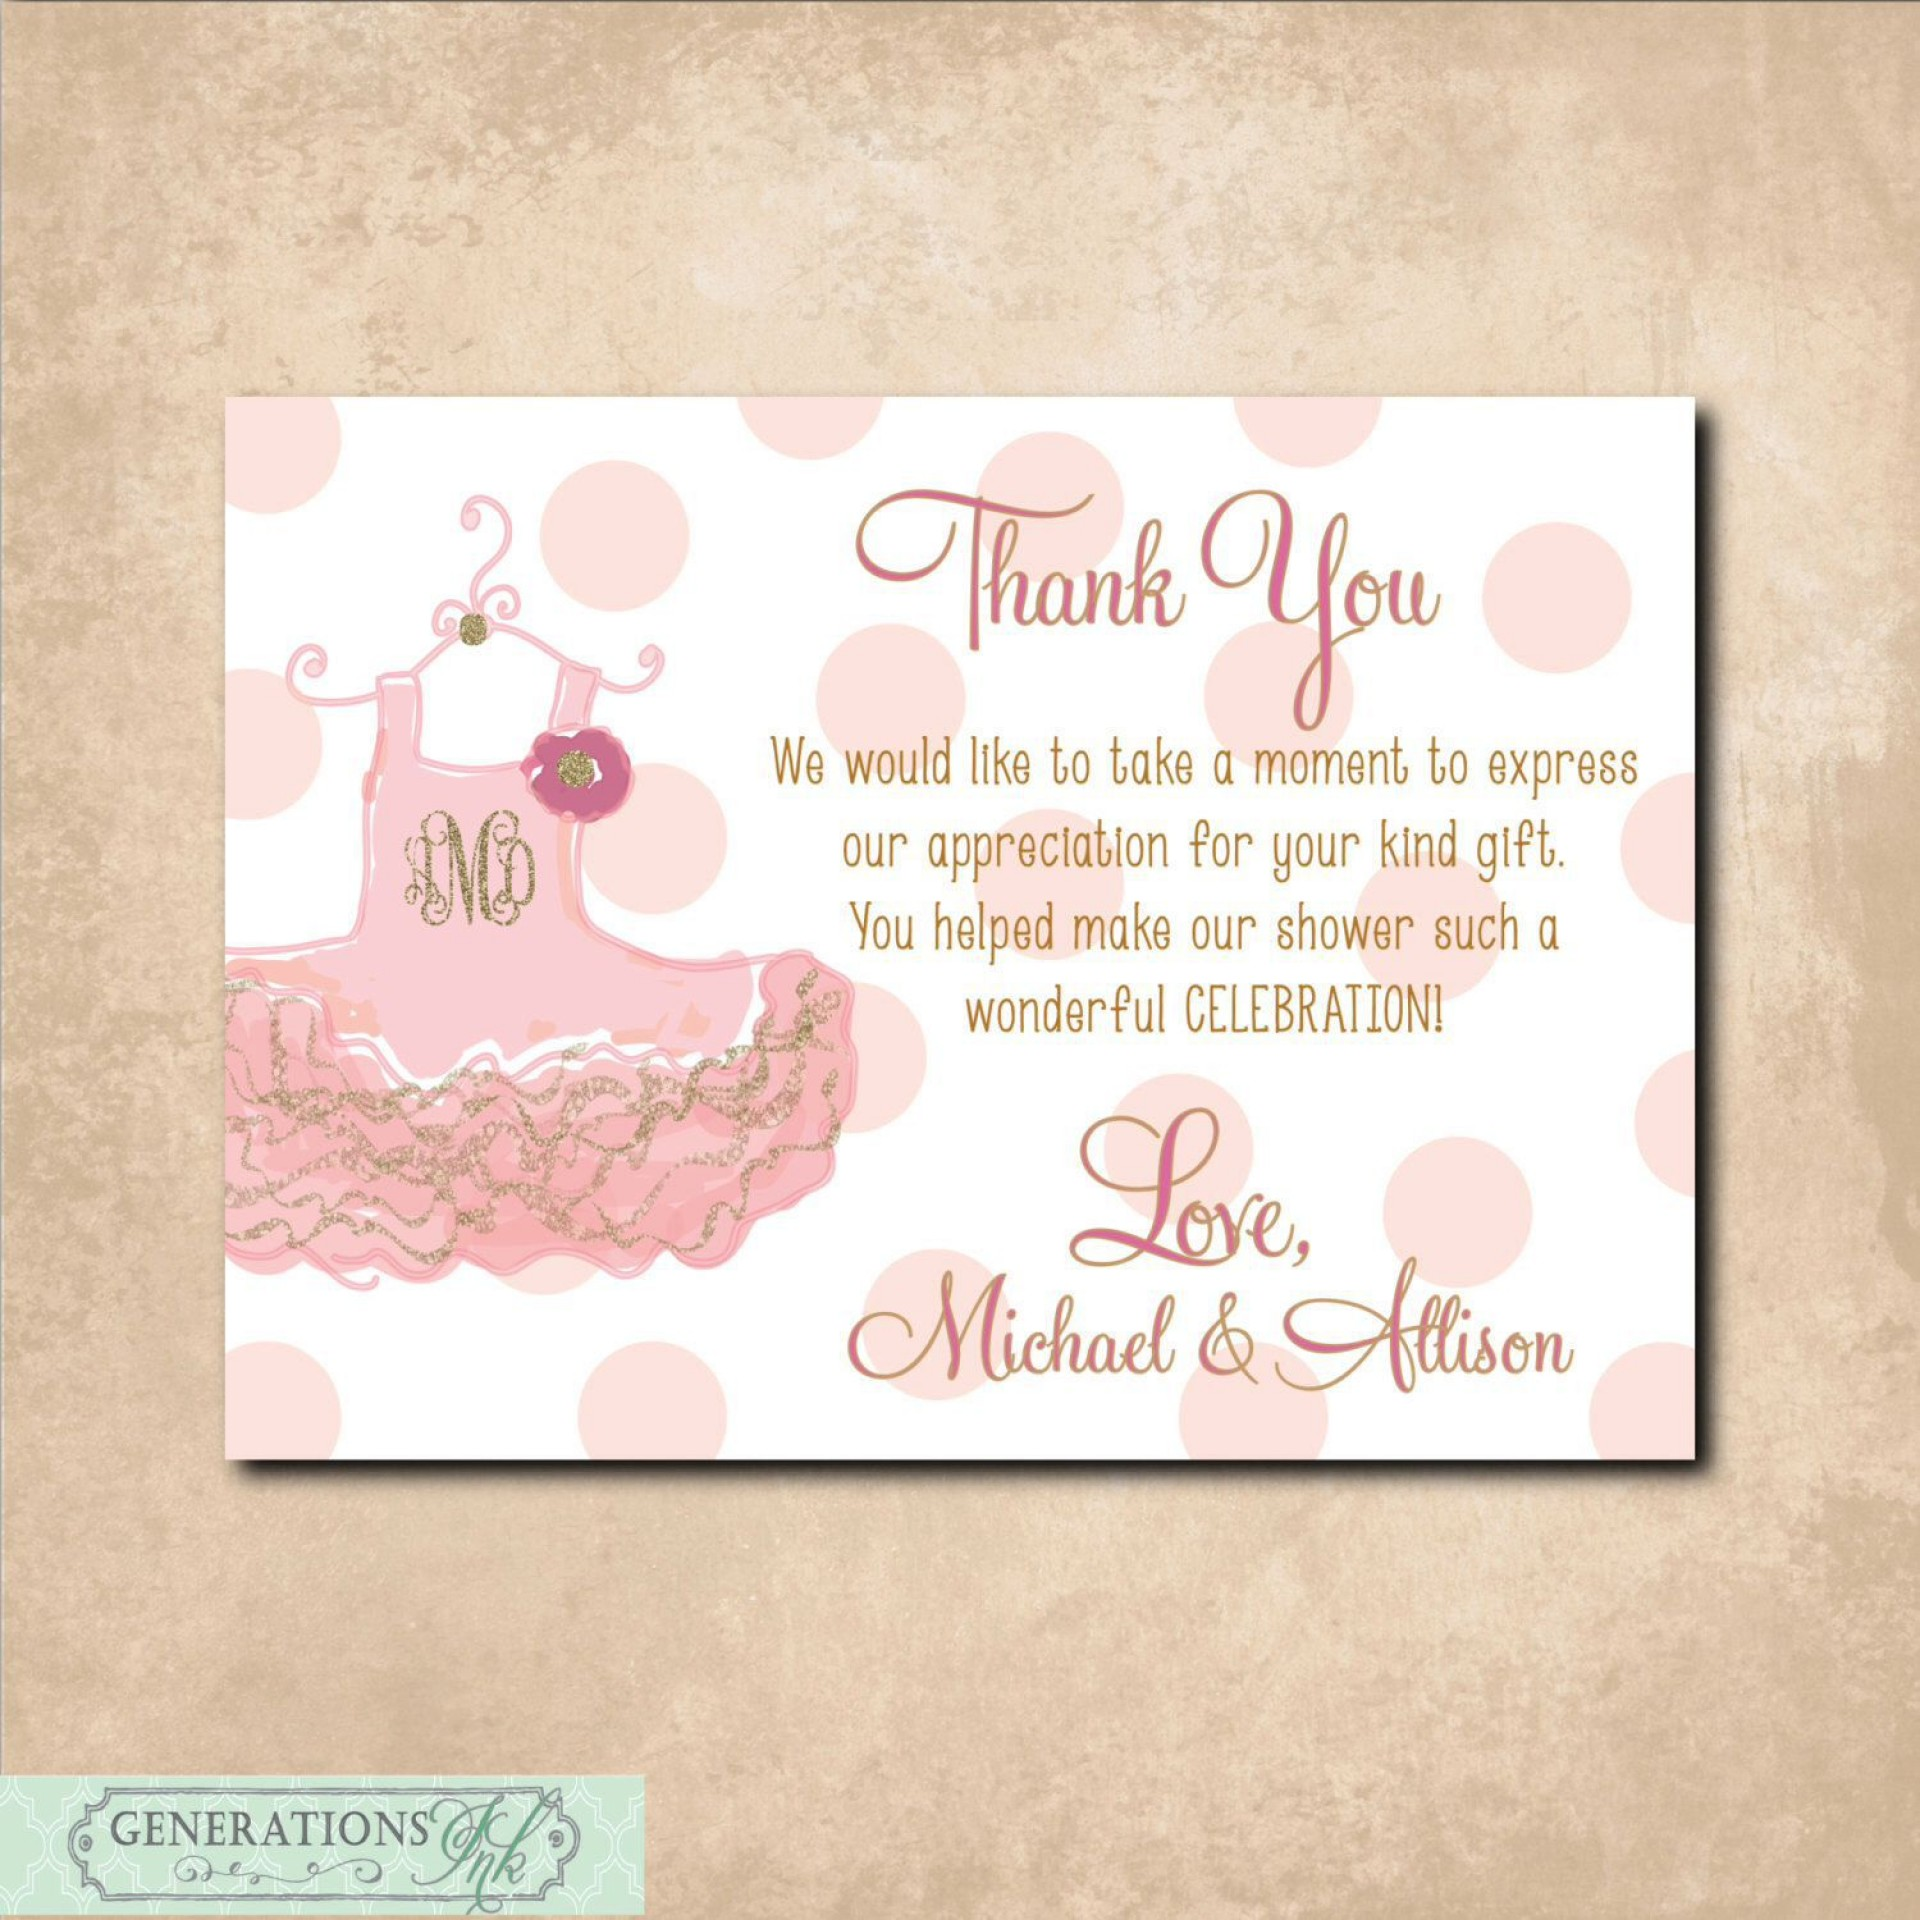 003 Unique Thank You Note Template For Baby Shower Gift Picture  Card Letter Sample1920